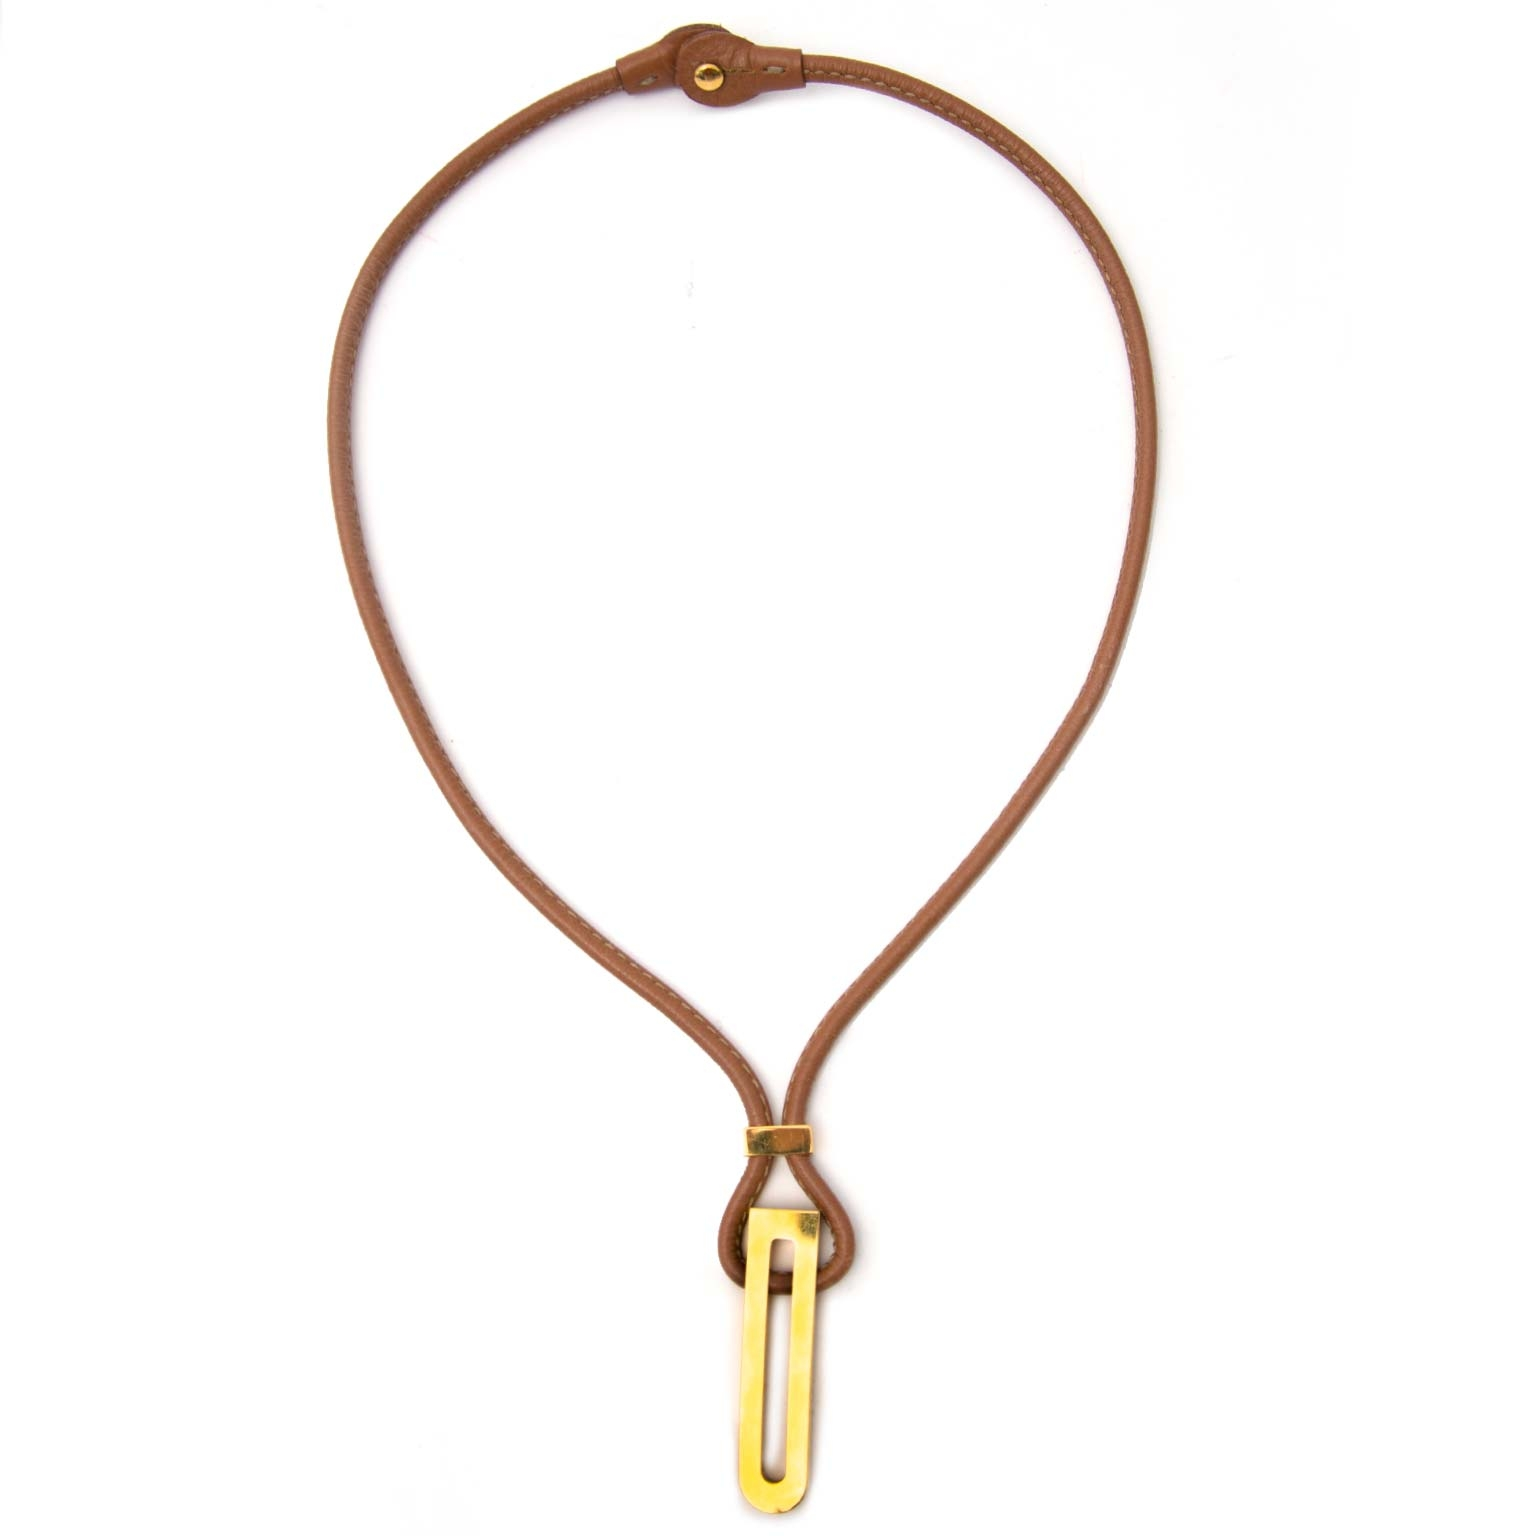 Delvaux Cognac Leather Necklace Gold Toned 'D' Charm Buy authentic designer Delvaux secondhand bags at Labellov at the best price. Safe and secure shopping. Koop tweedehands authentieke Delvaux tassen bij designer webwinkel labellov.